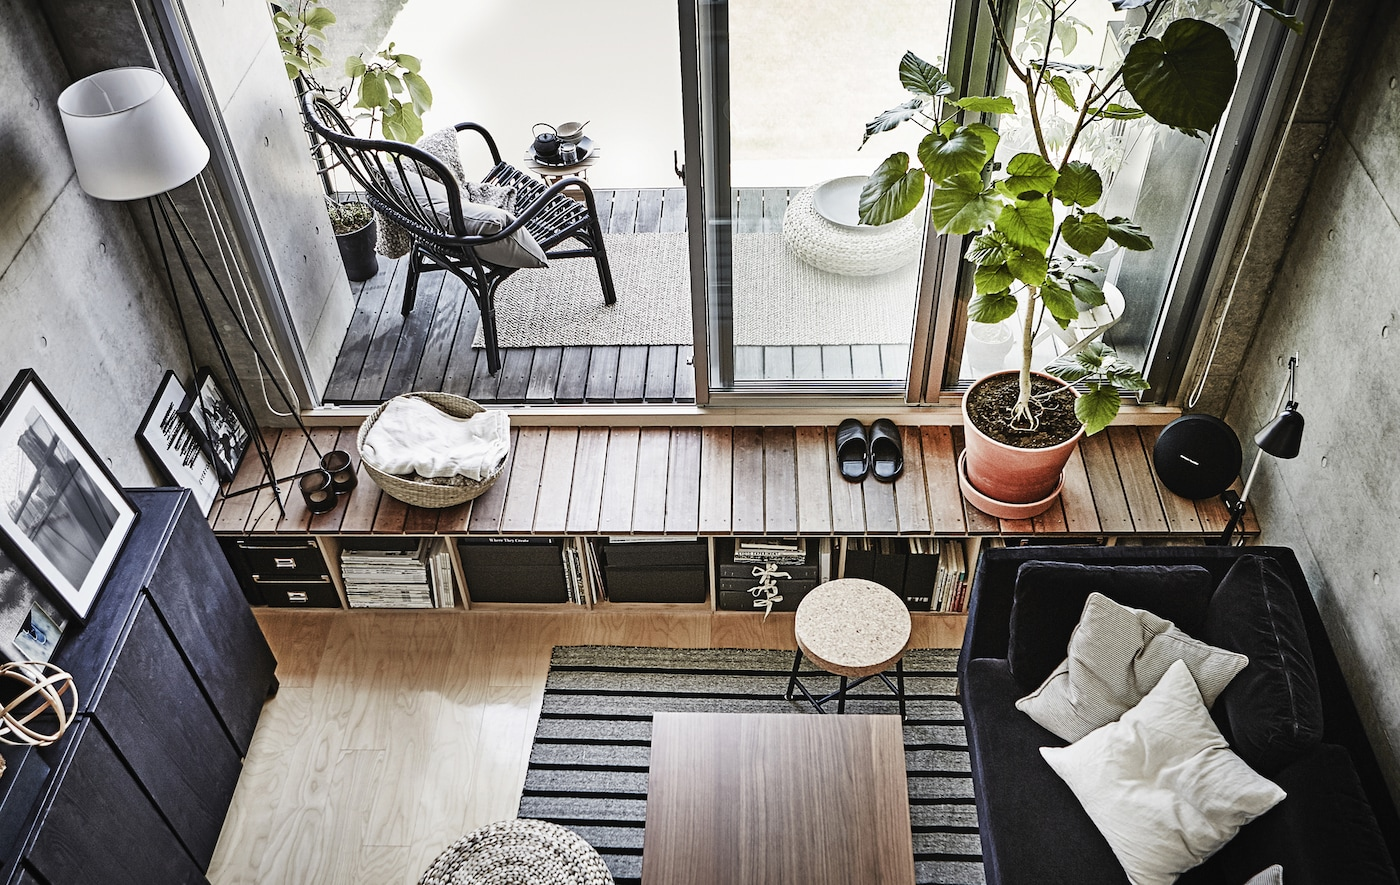 A grey and black living room with patio and French windows.